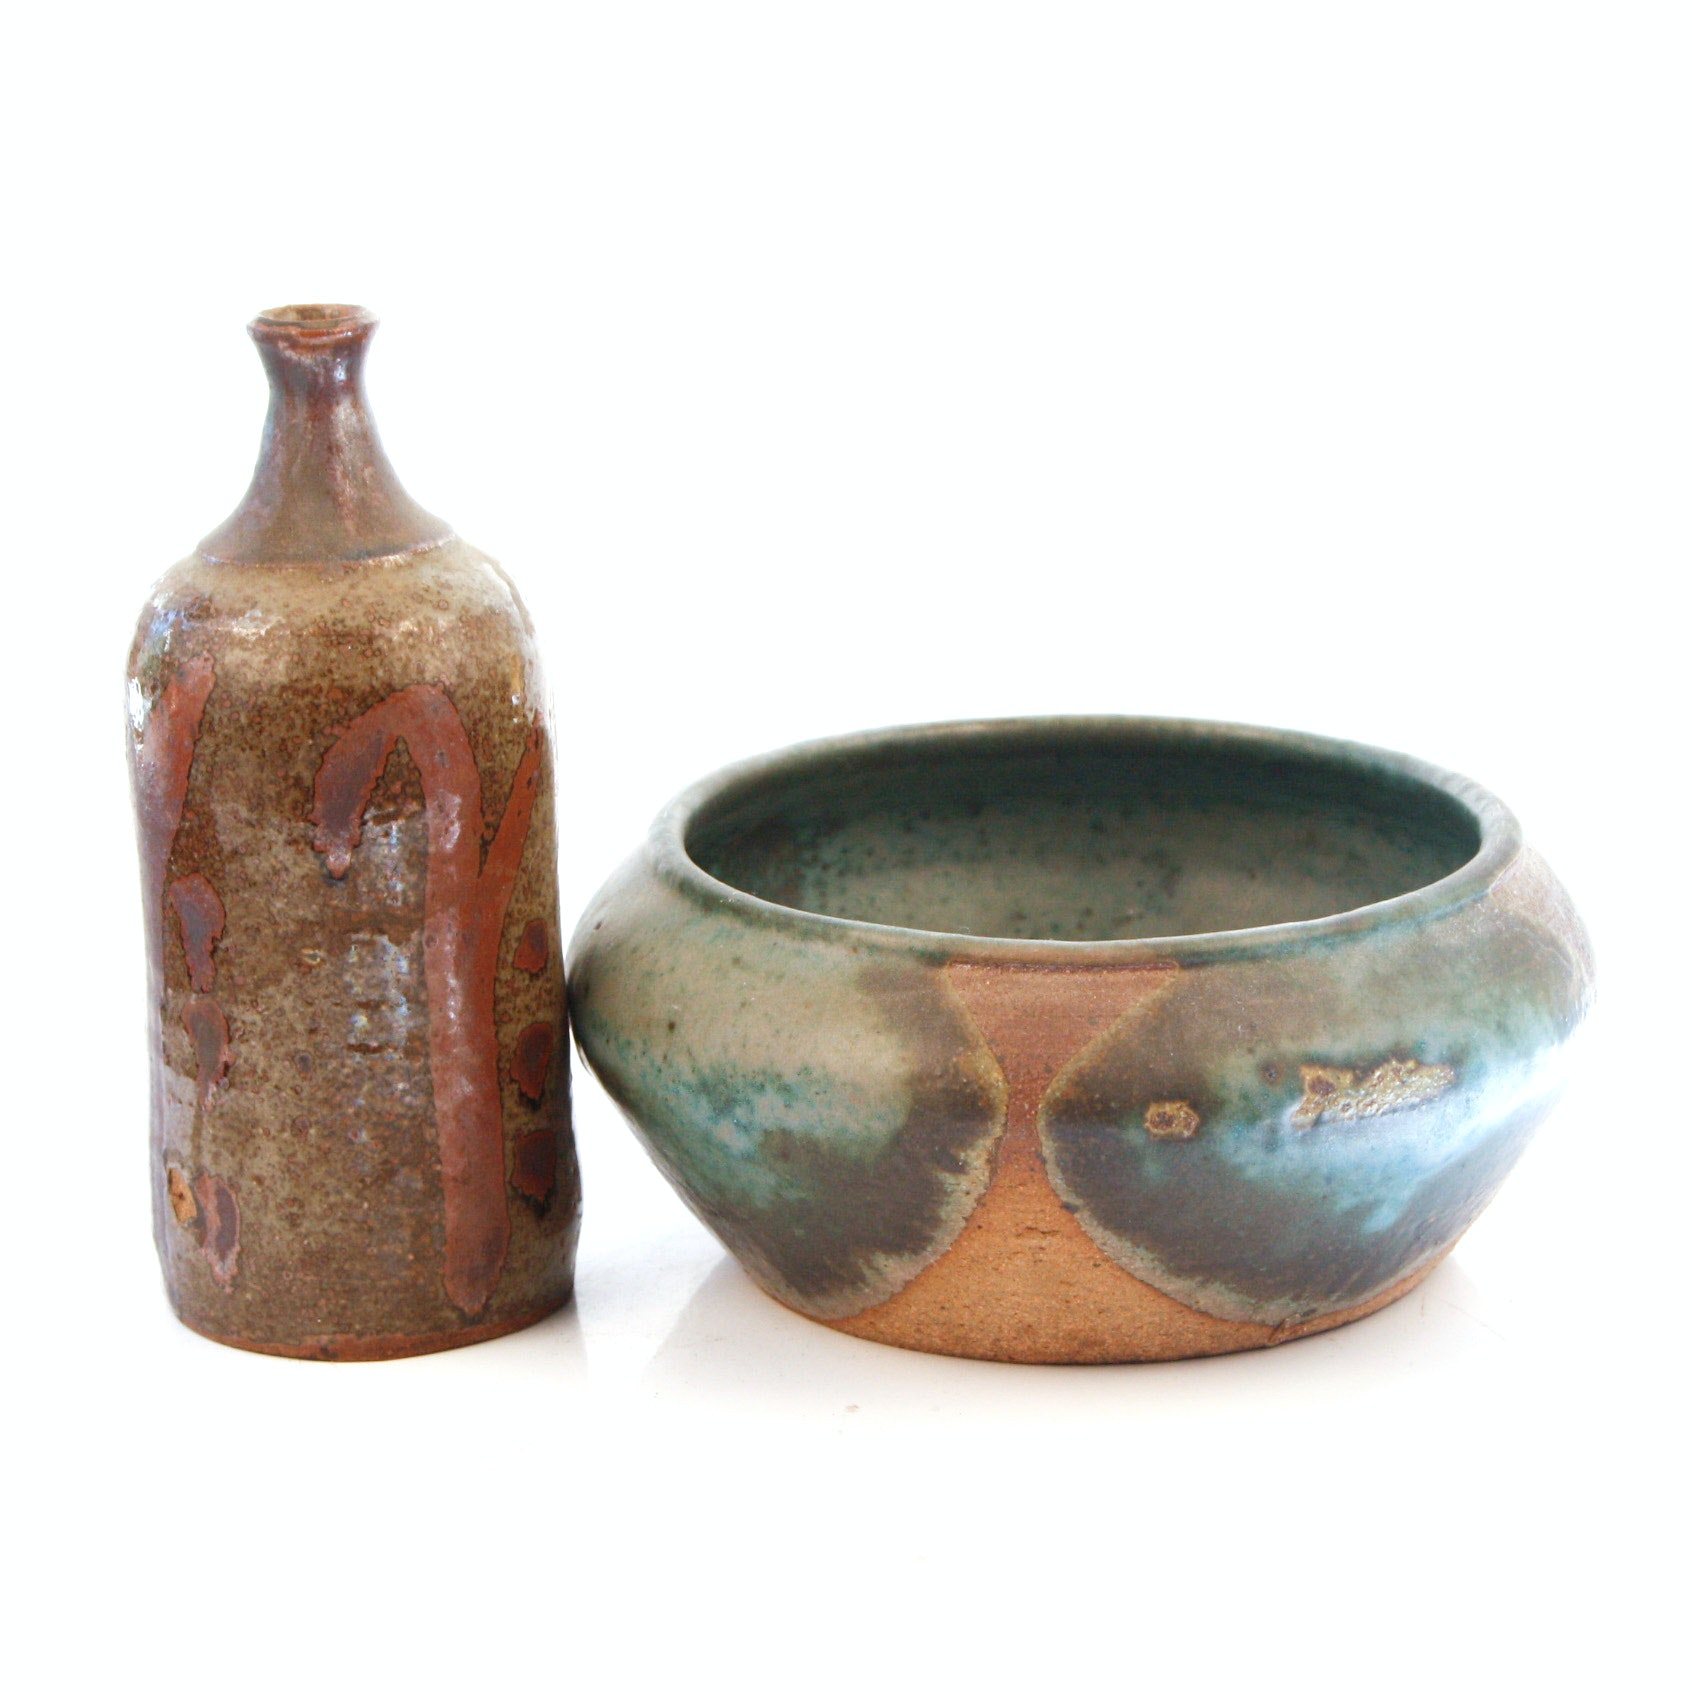 Pairing of Hand Thrown Stoneware Pottery Vessels